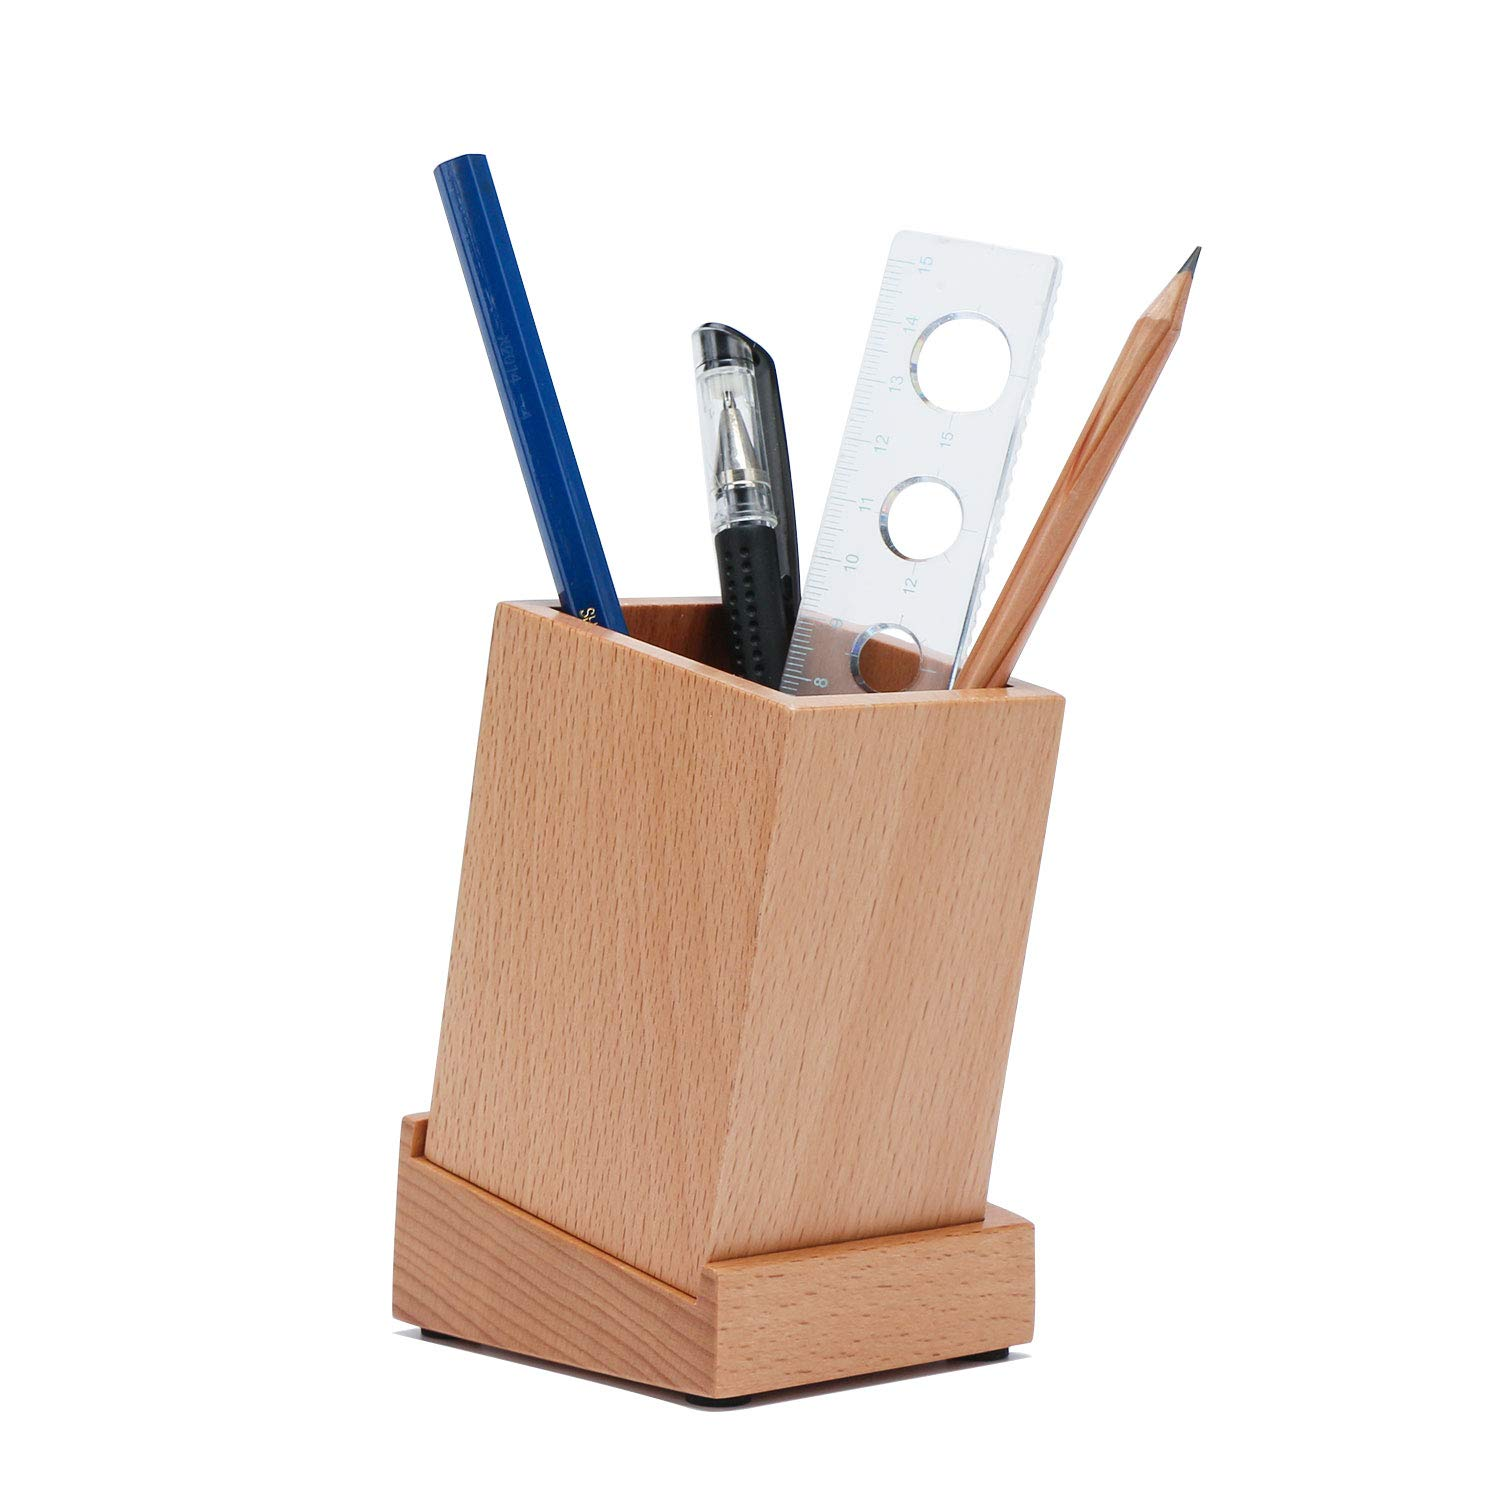 Wood Pencil Holder, Segarty Desktop Storage Organizer Pen Case Pencil Stand Container for School, Office, Home, Birthday Gift